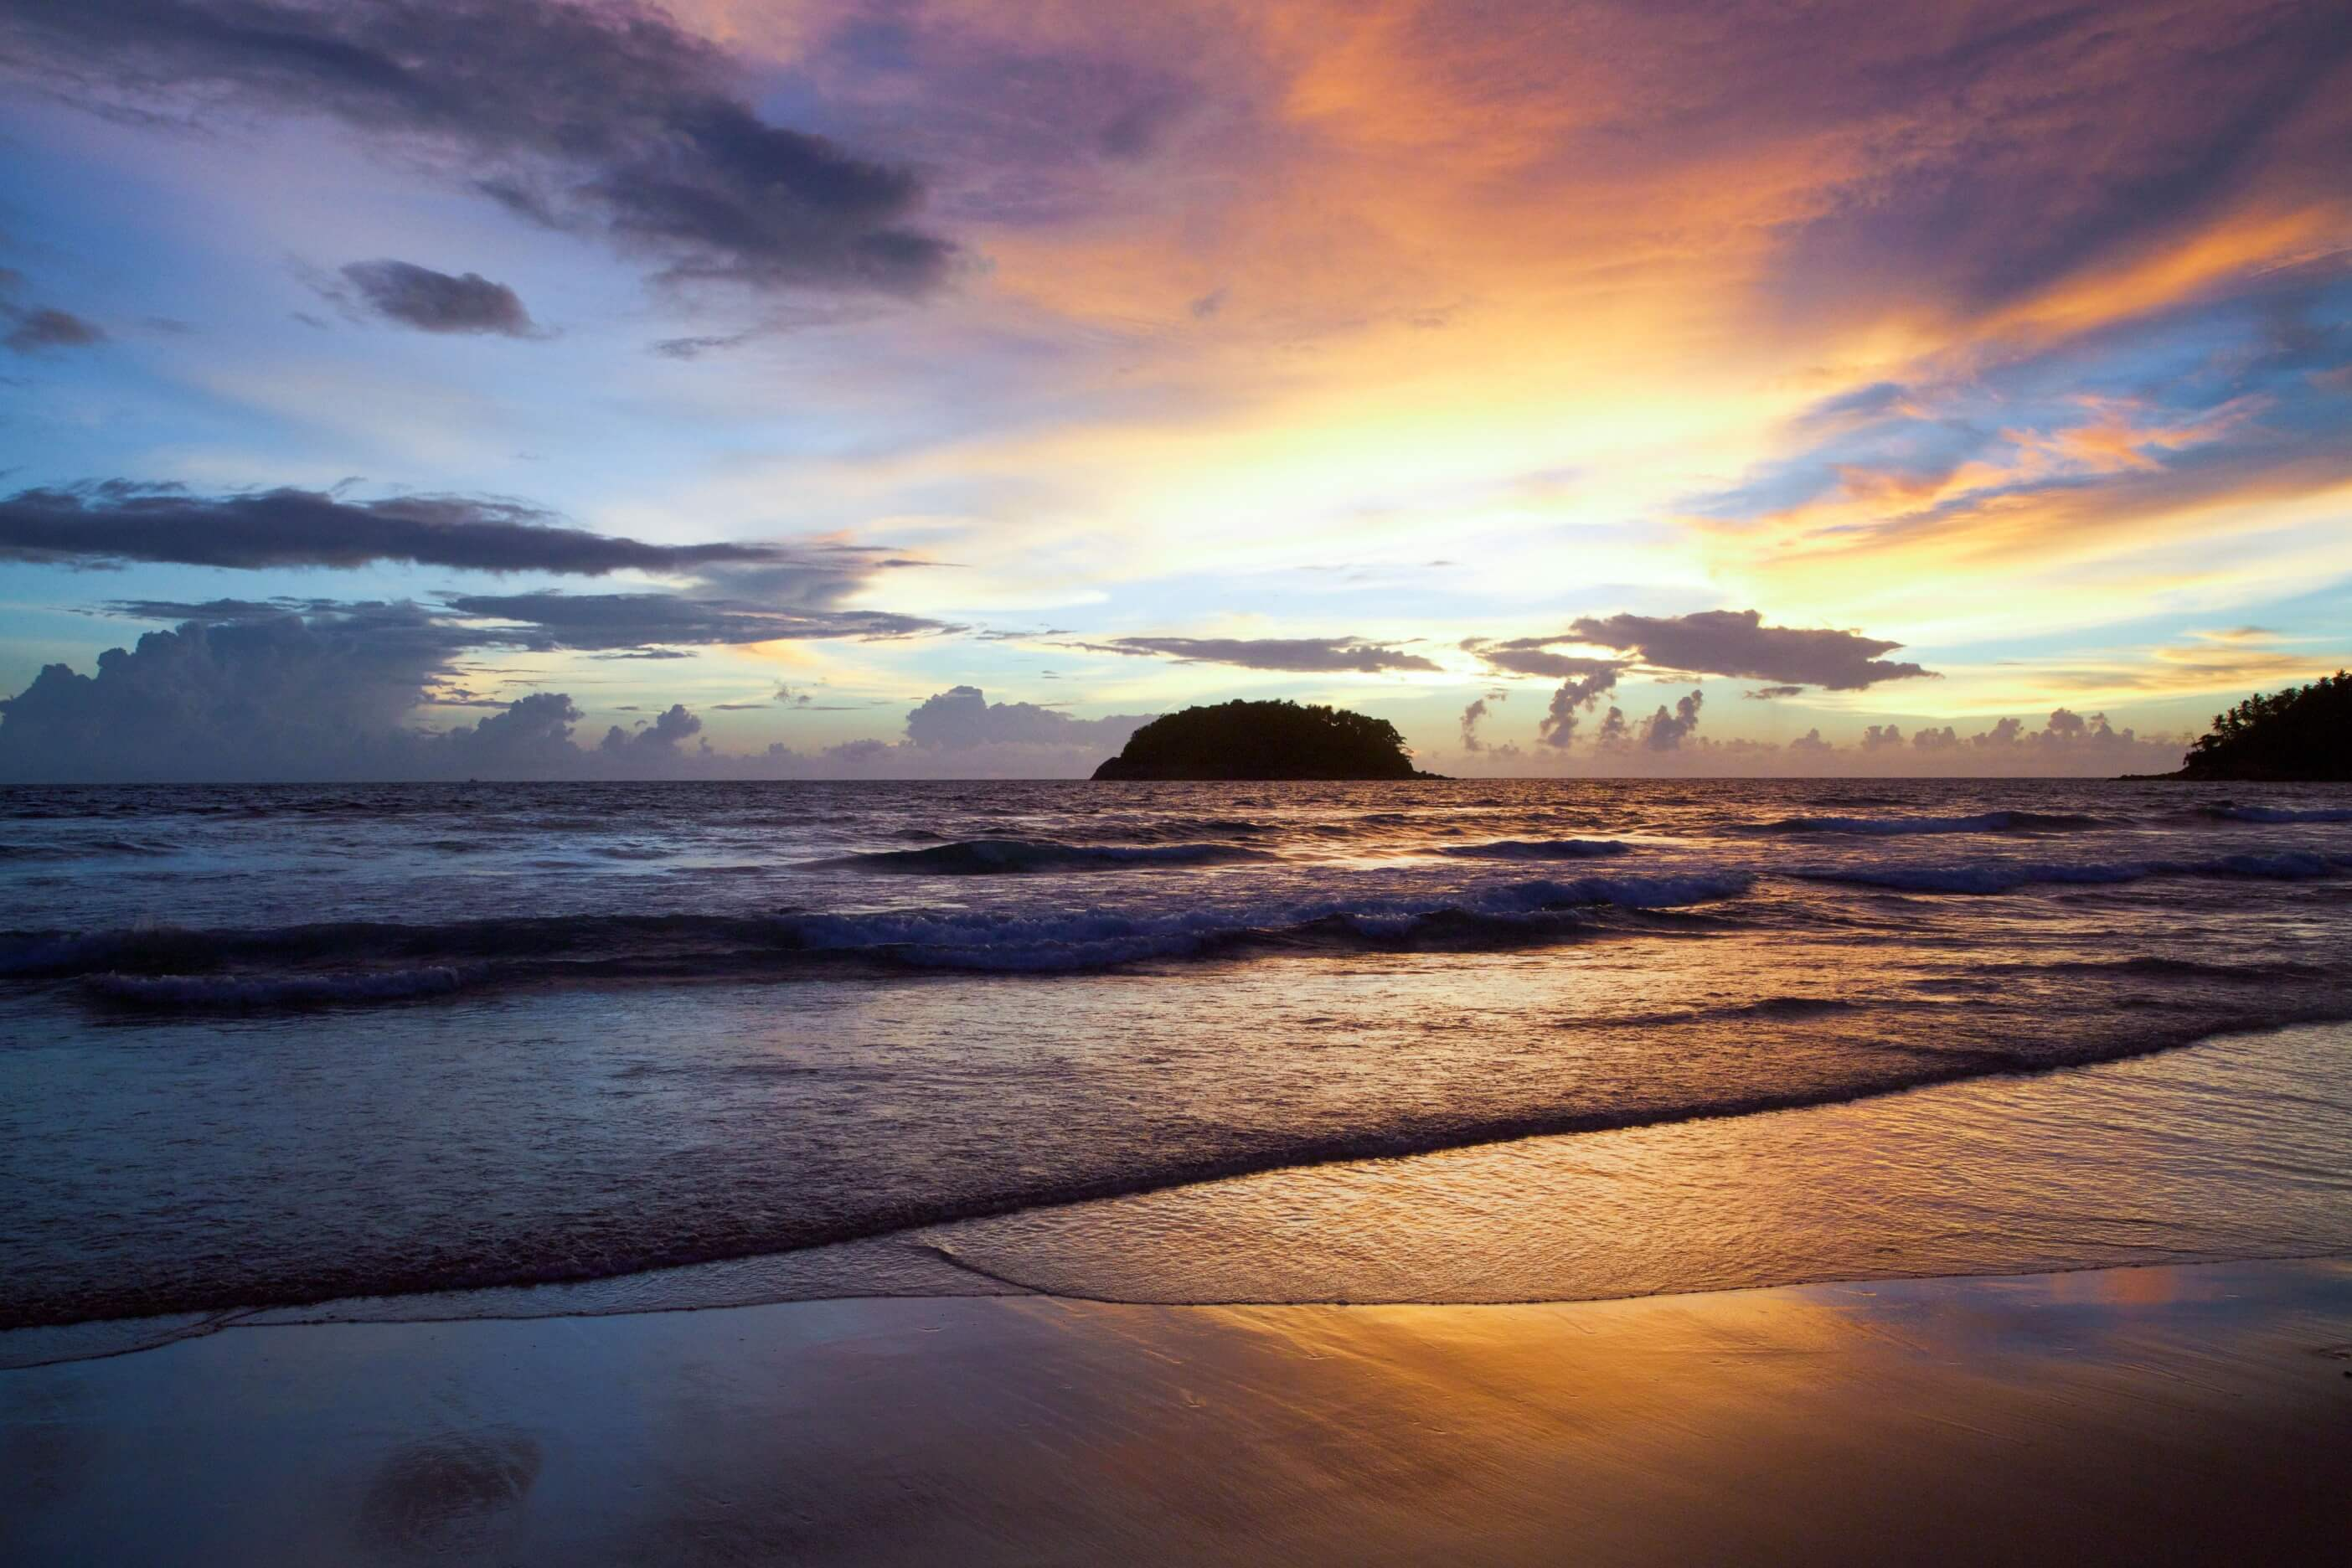 Jamaica Also Receives Plenty Of Sunshine During The Day Except For Late Afternoons When Short Periods Rain Take Its Place